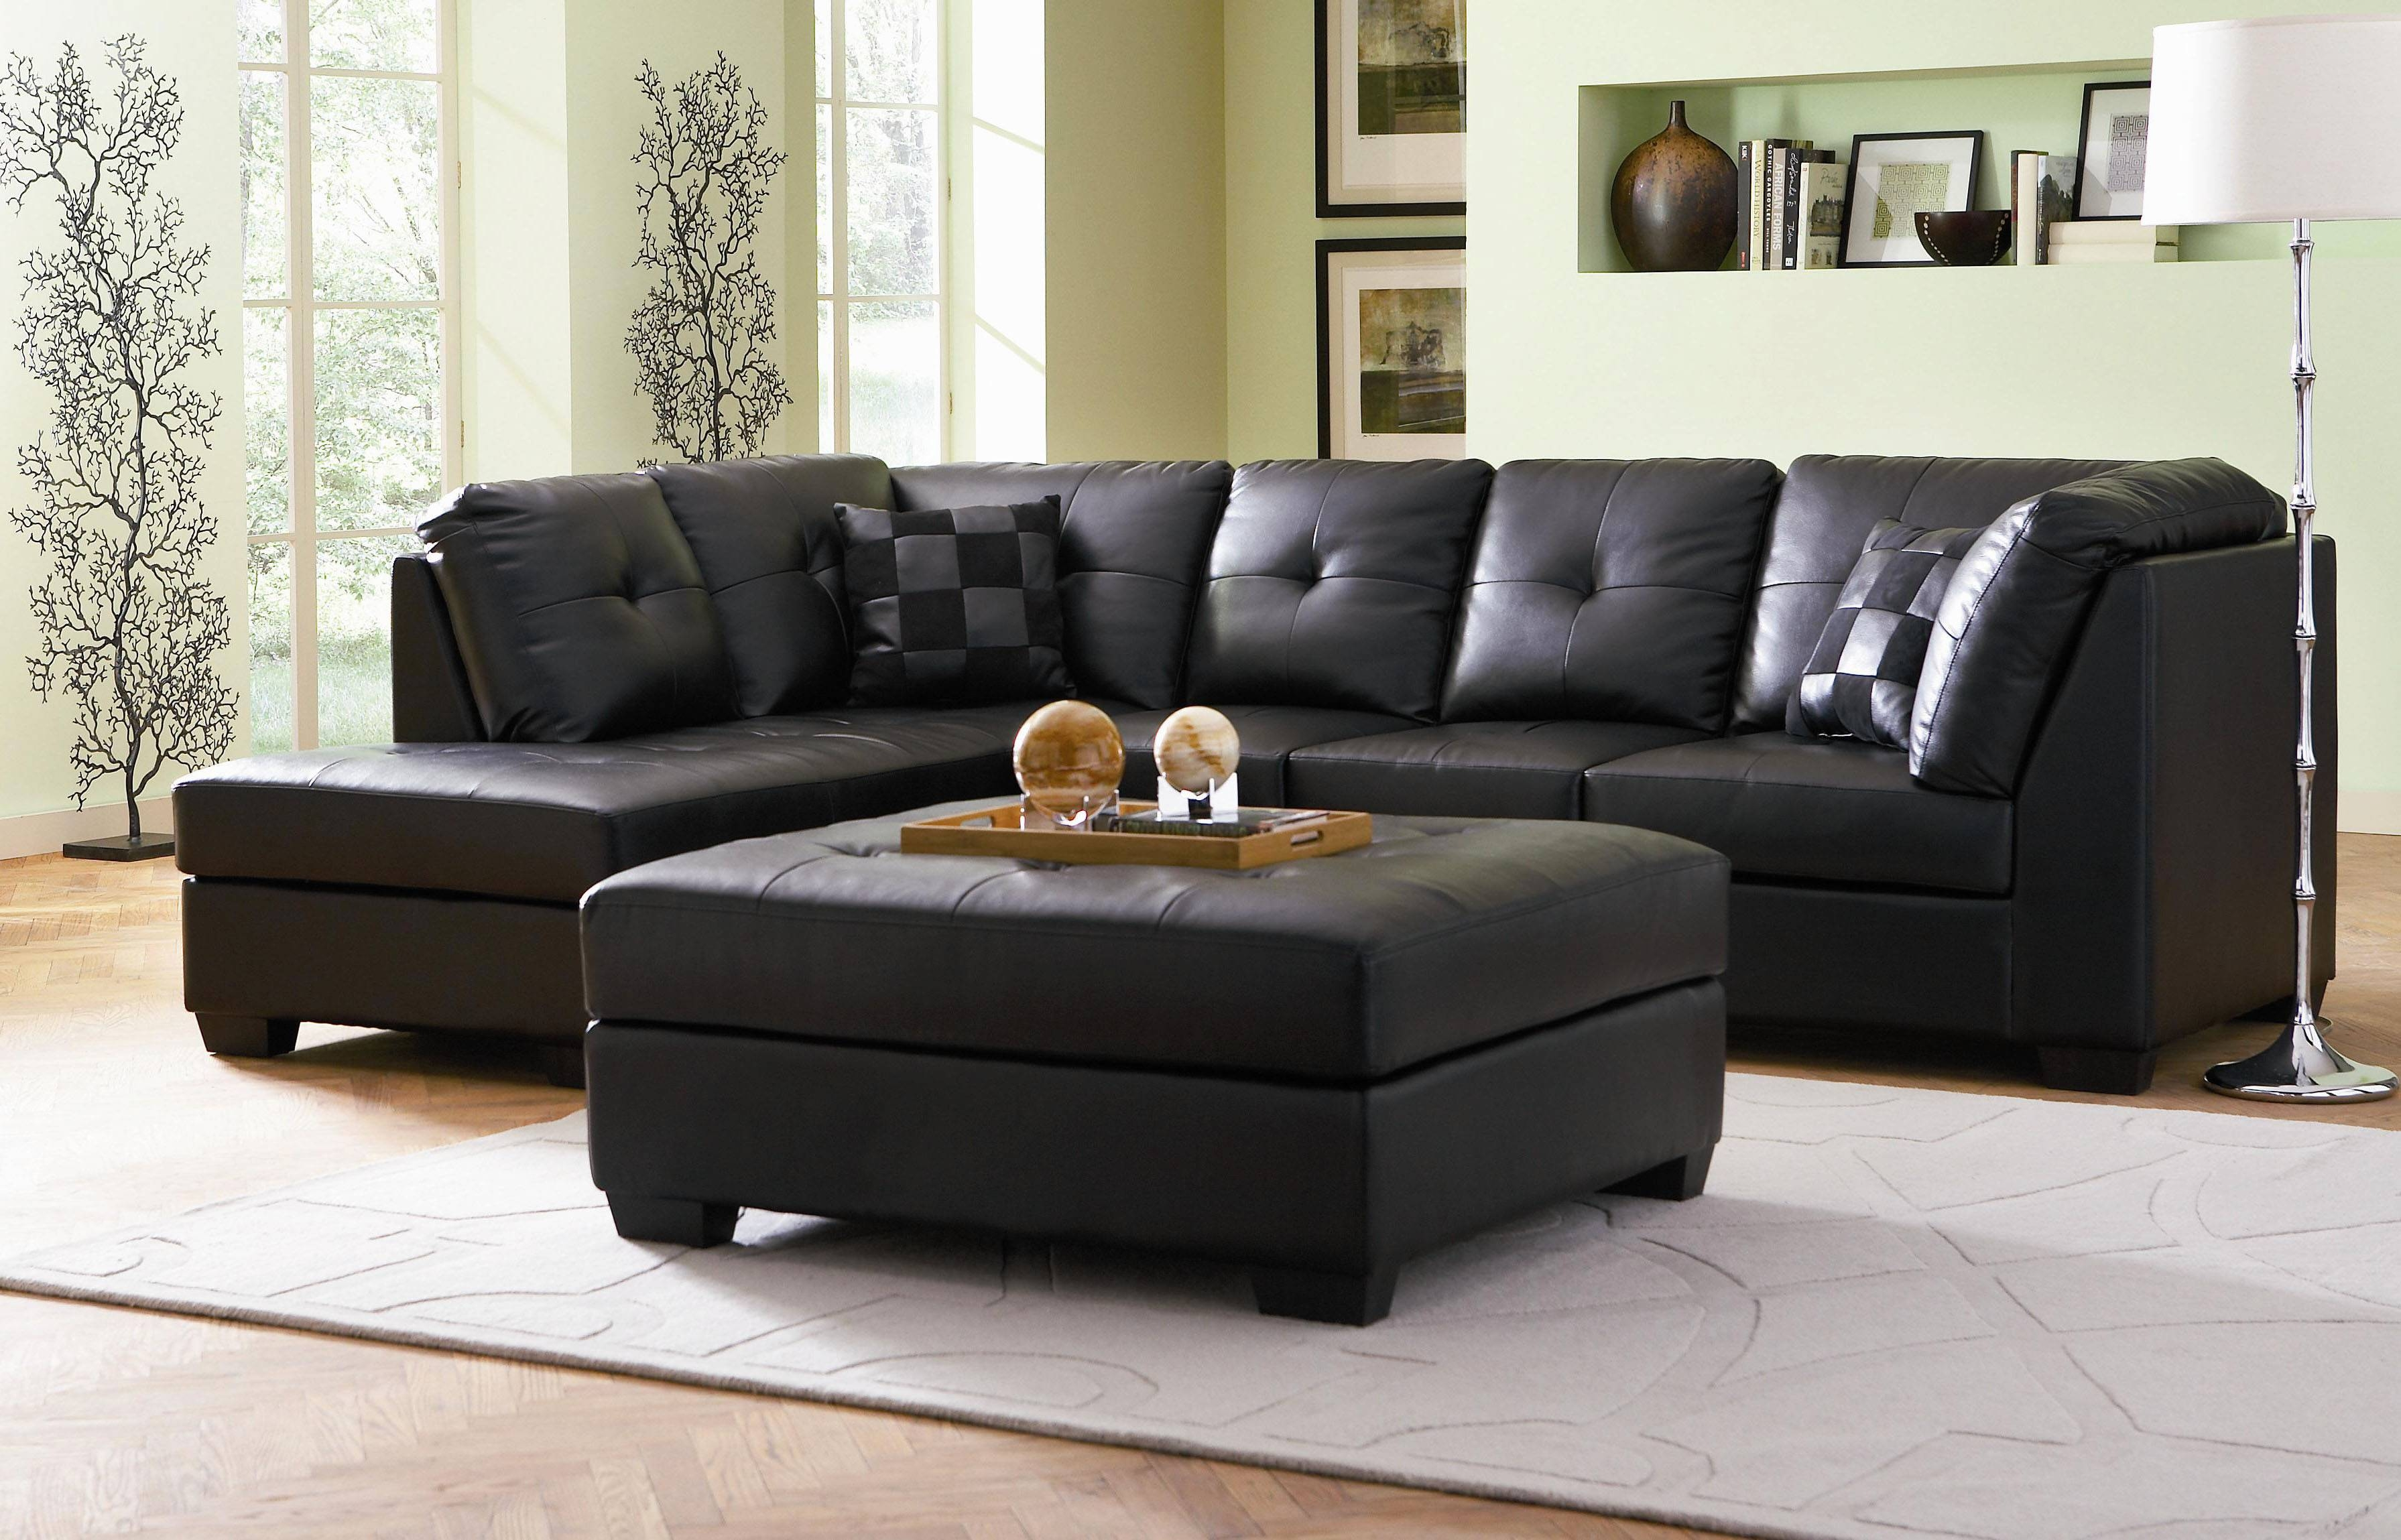 Awesome Small L Shaped Sectional Sofa 11 For Your Leather Inside Sectional Sofa San Diego (View 2 of 30)